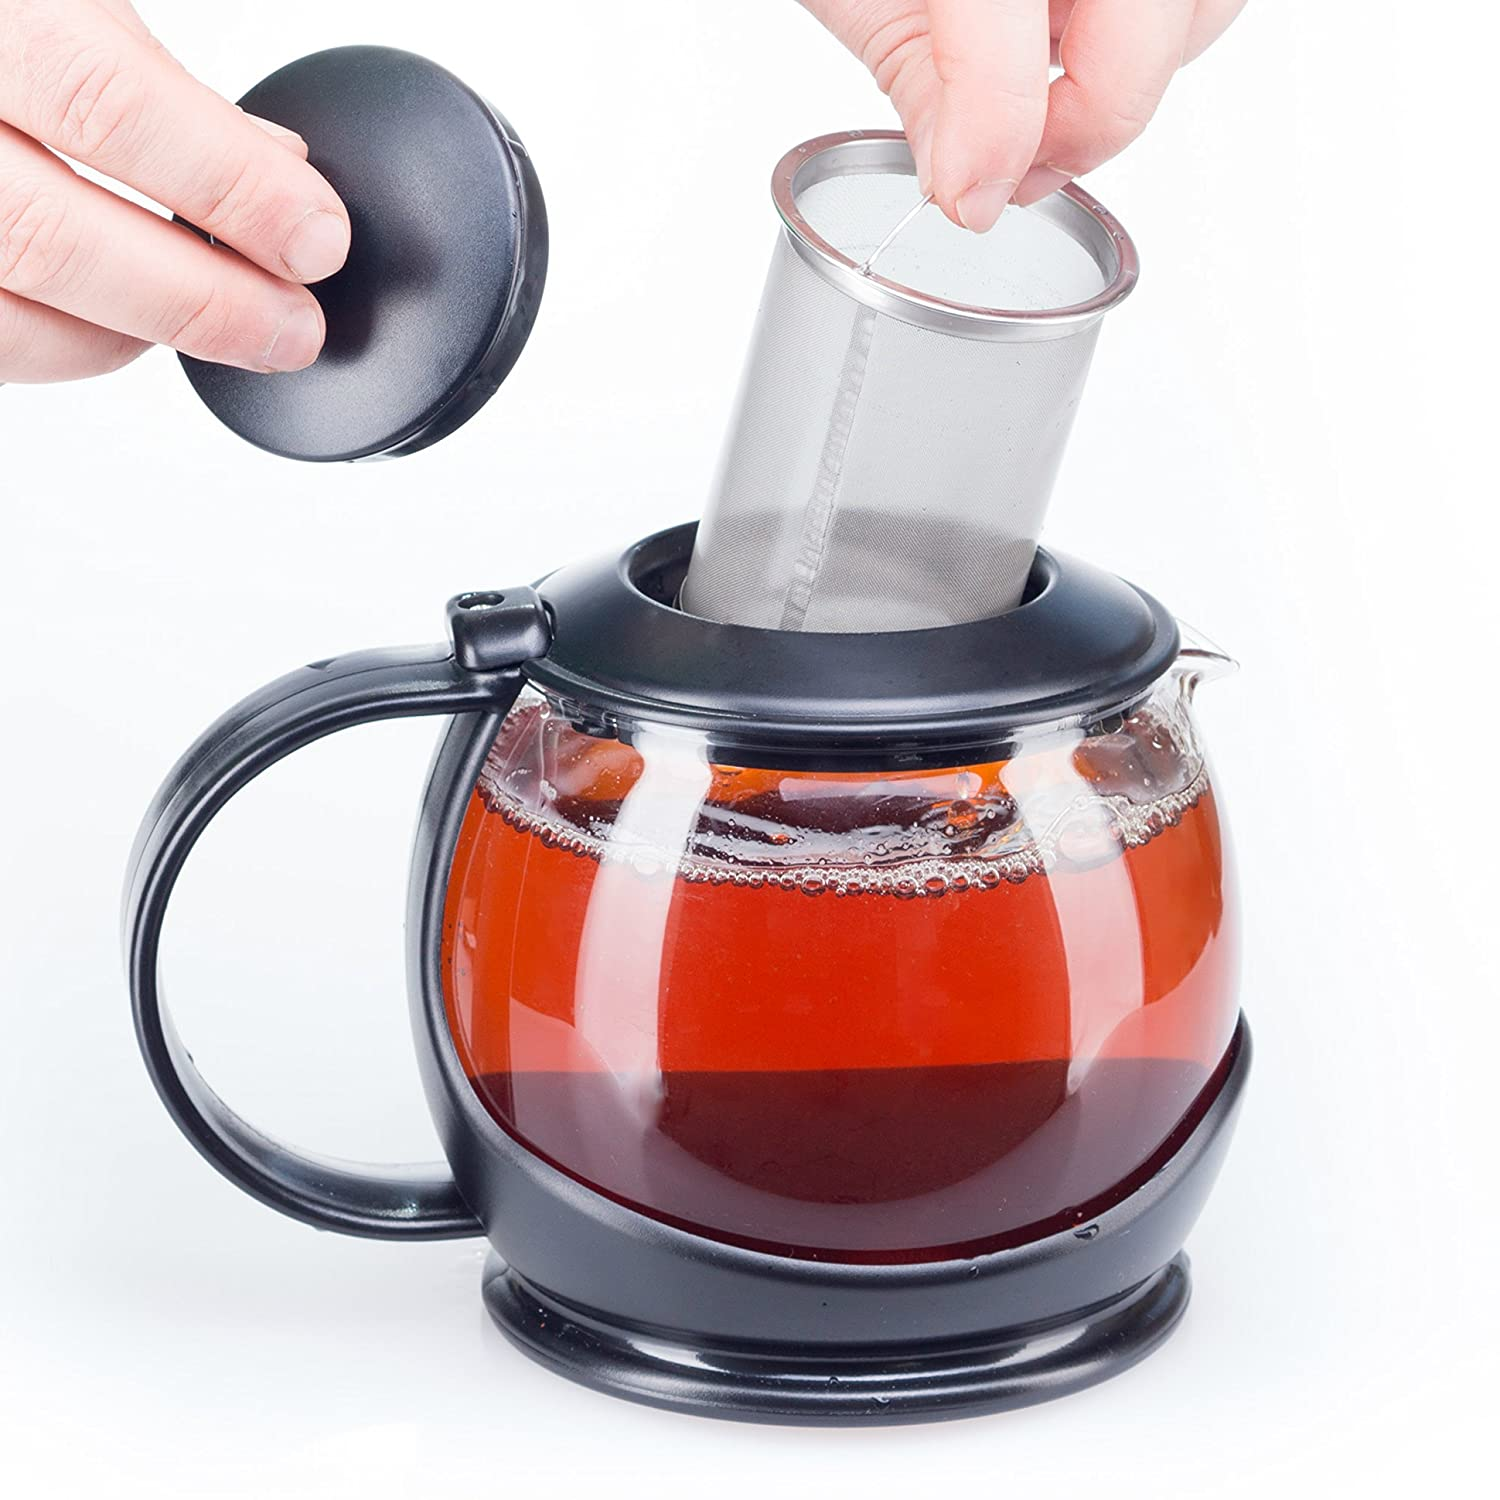 Glass Teapot with Infuser and Warmer Sleeve, Blooming Loose Leaf Tea Pot, Tea Infuser Holds 4 -5 Cups - 2 Infusers Included